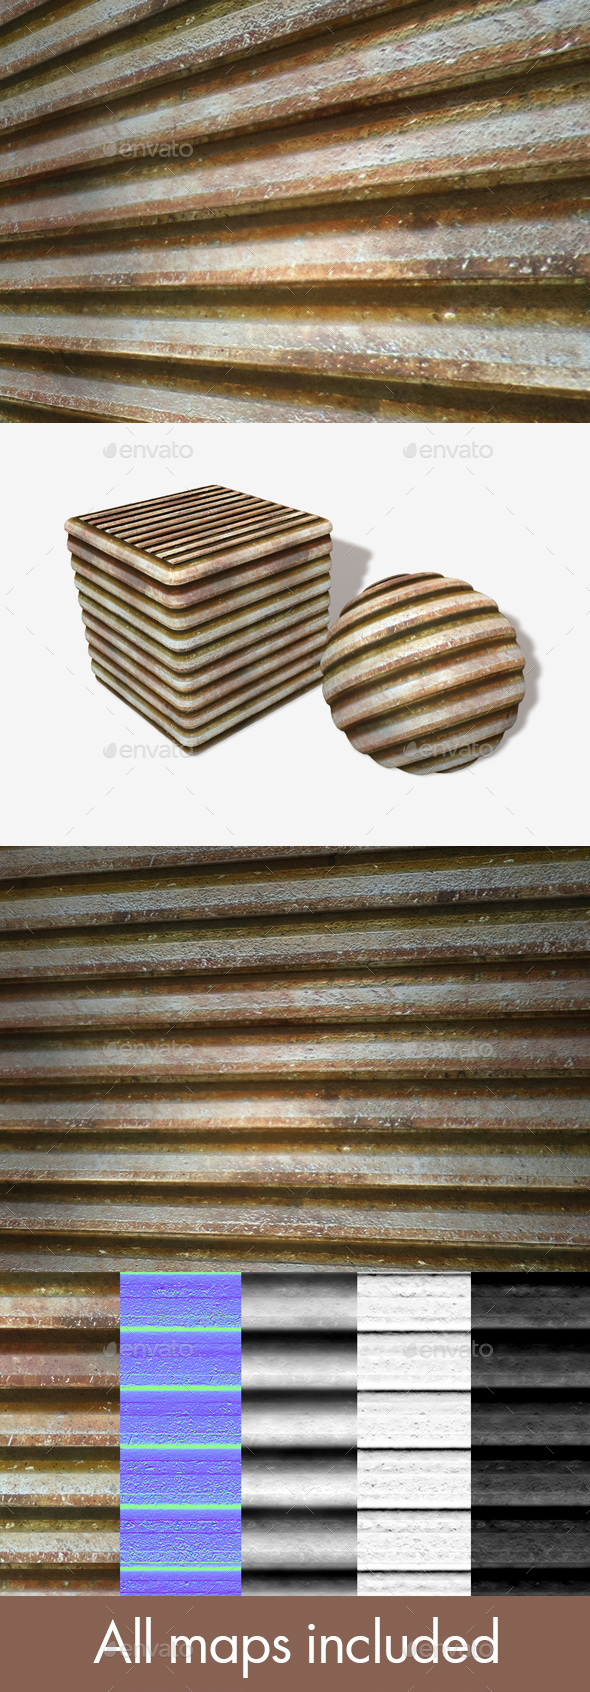 Dirty Metal Grate Seamless Texture. - 3DOcean Item for Sale